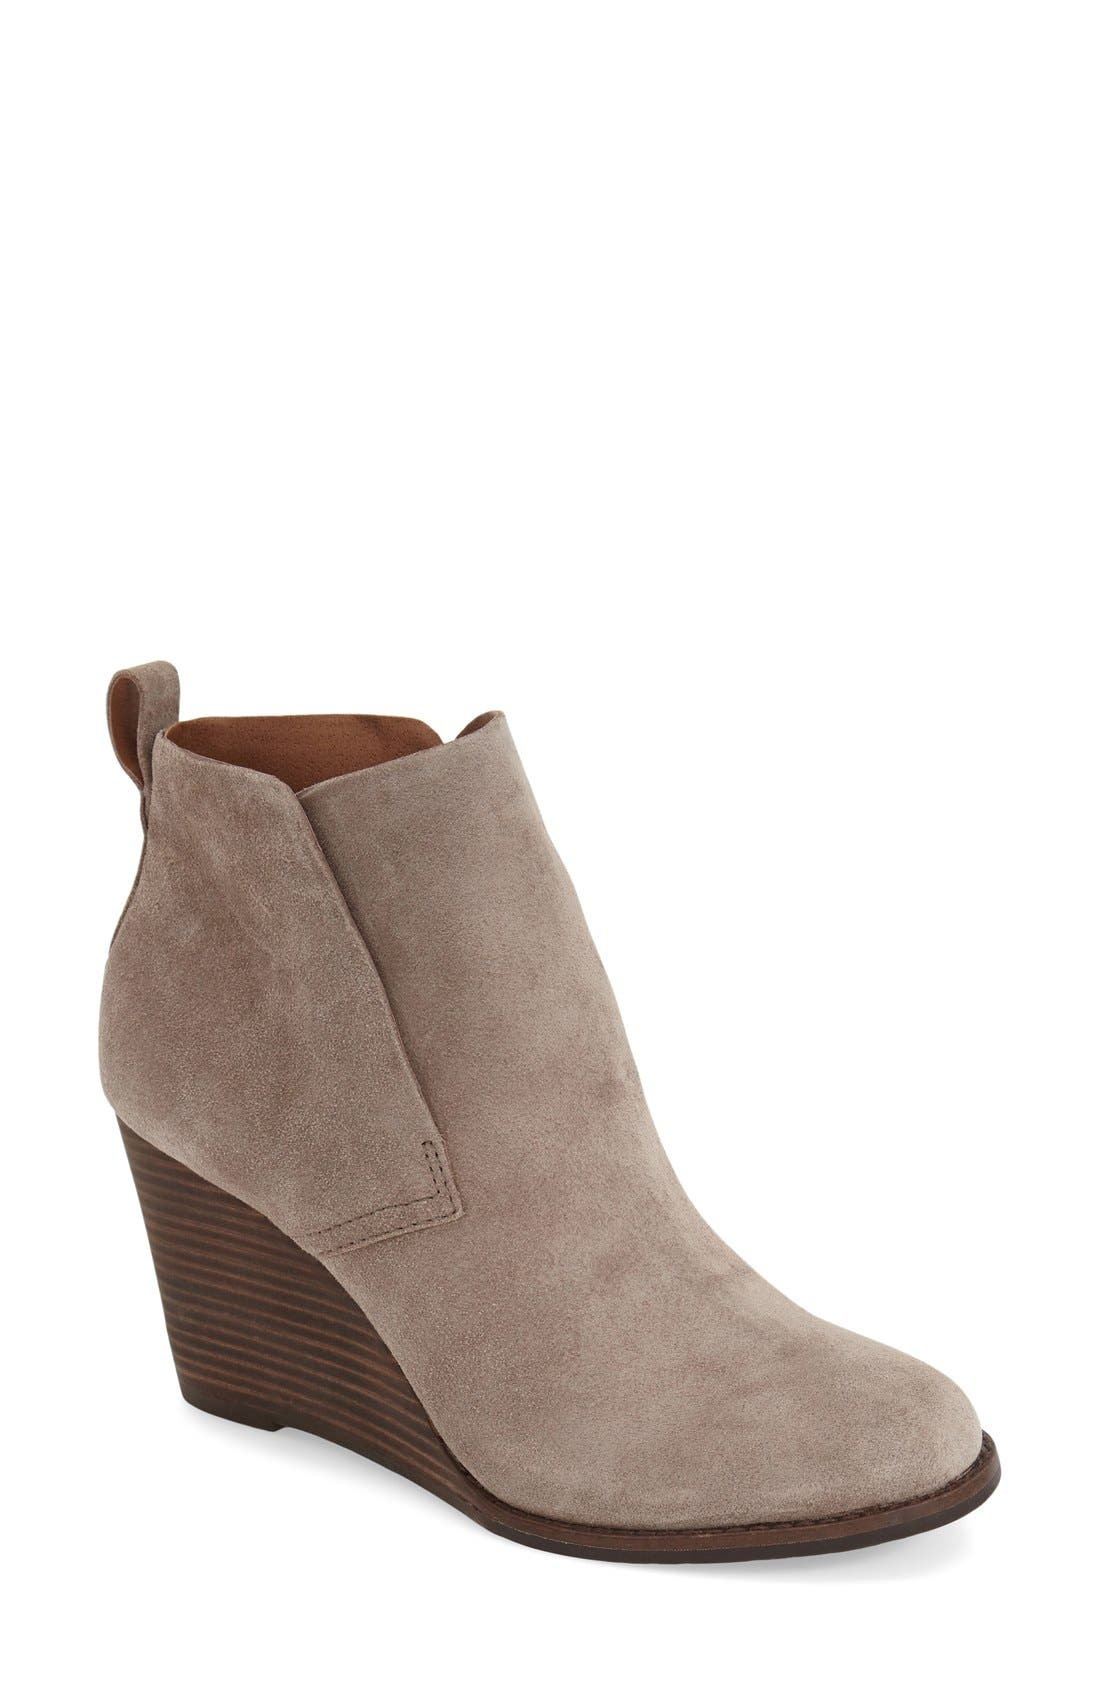 'Yoniana' Wedge Bootie,                             Main thumbnail 4, color,